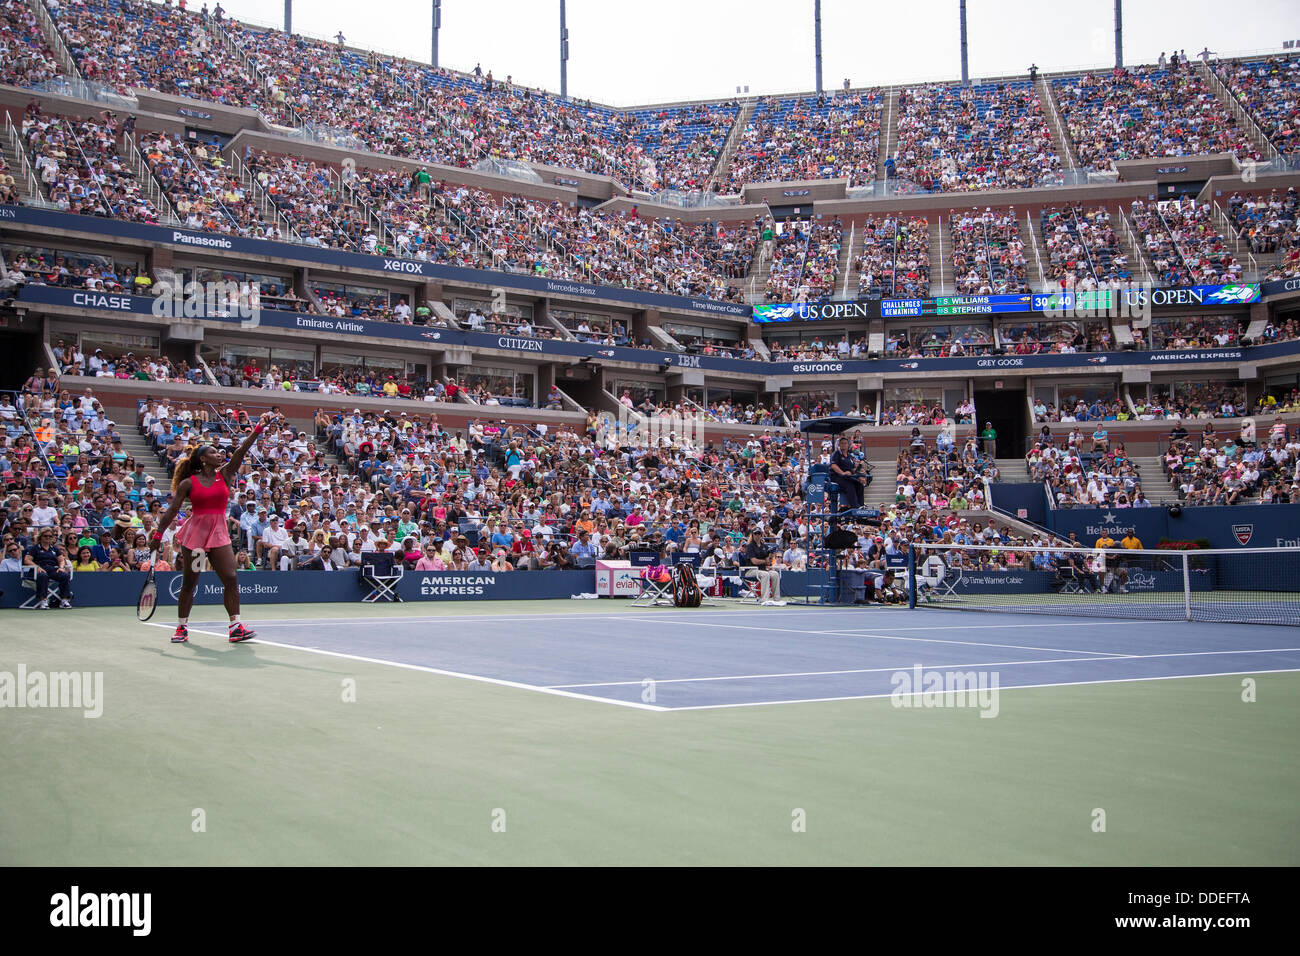 Flushing Meadows-Corona Park, Queens, NewYork, September 01, 2013 Serena Williams (USA) competing against Sloane - Stock Image